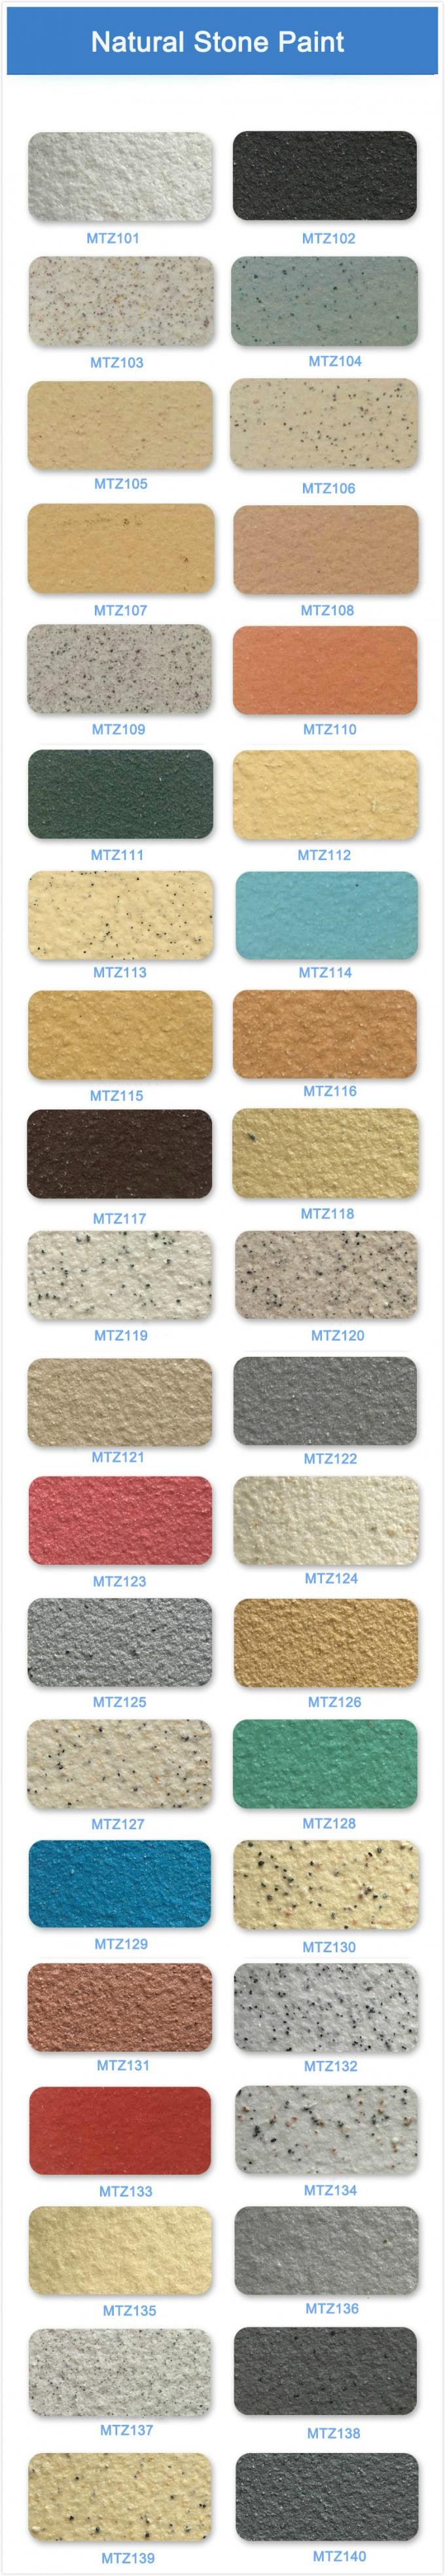 Waterborne Stone Finish Paint Stone Effect Coating for Exterior Wall